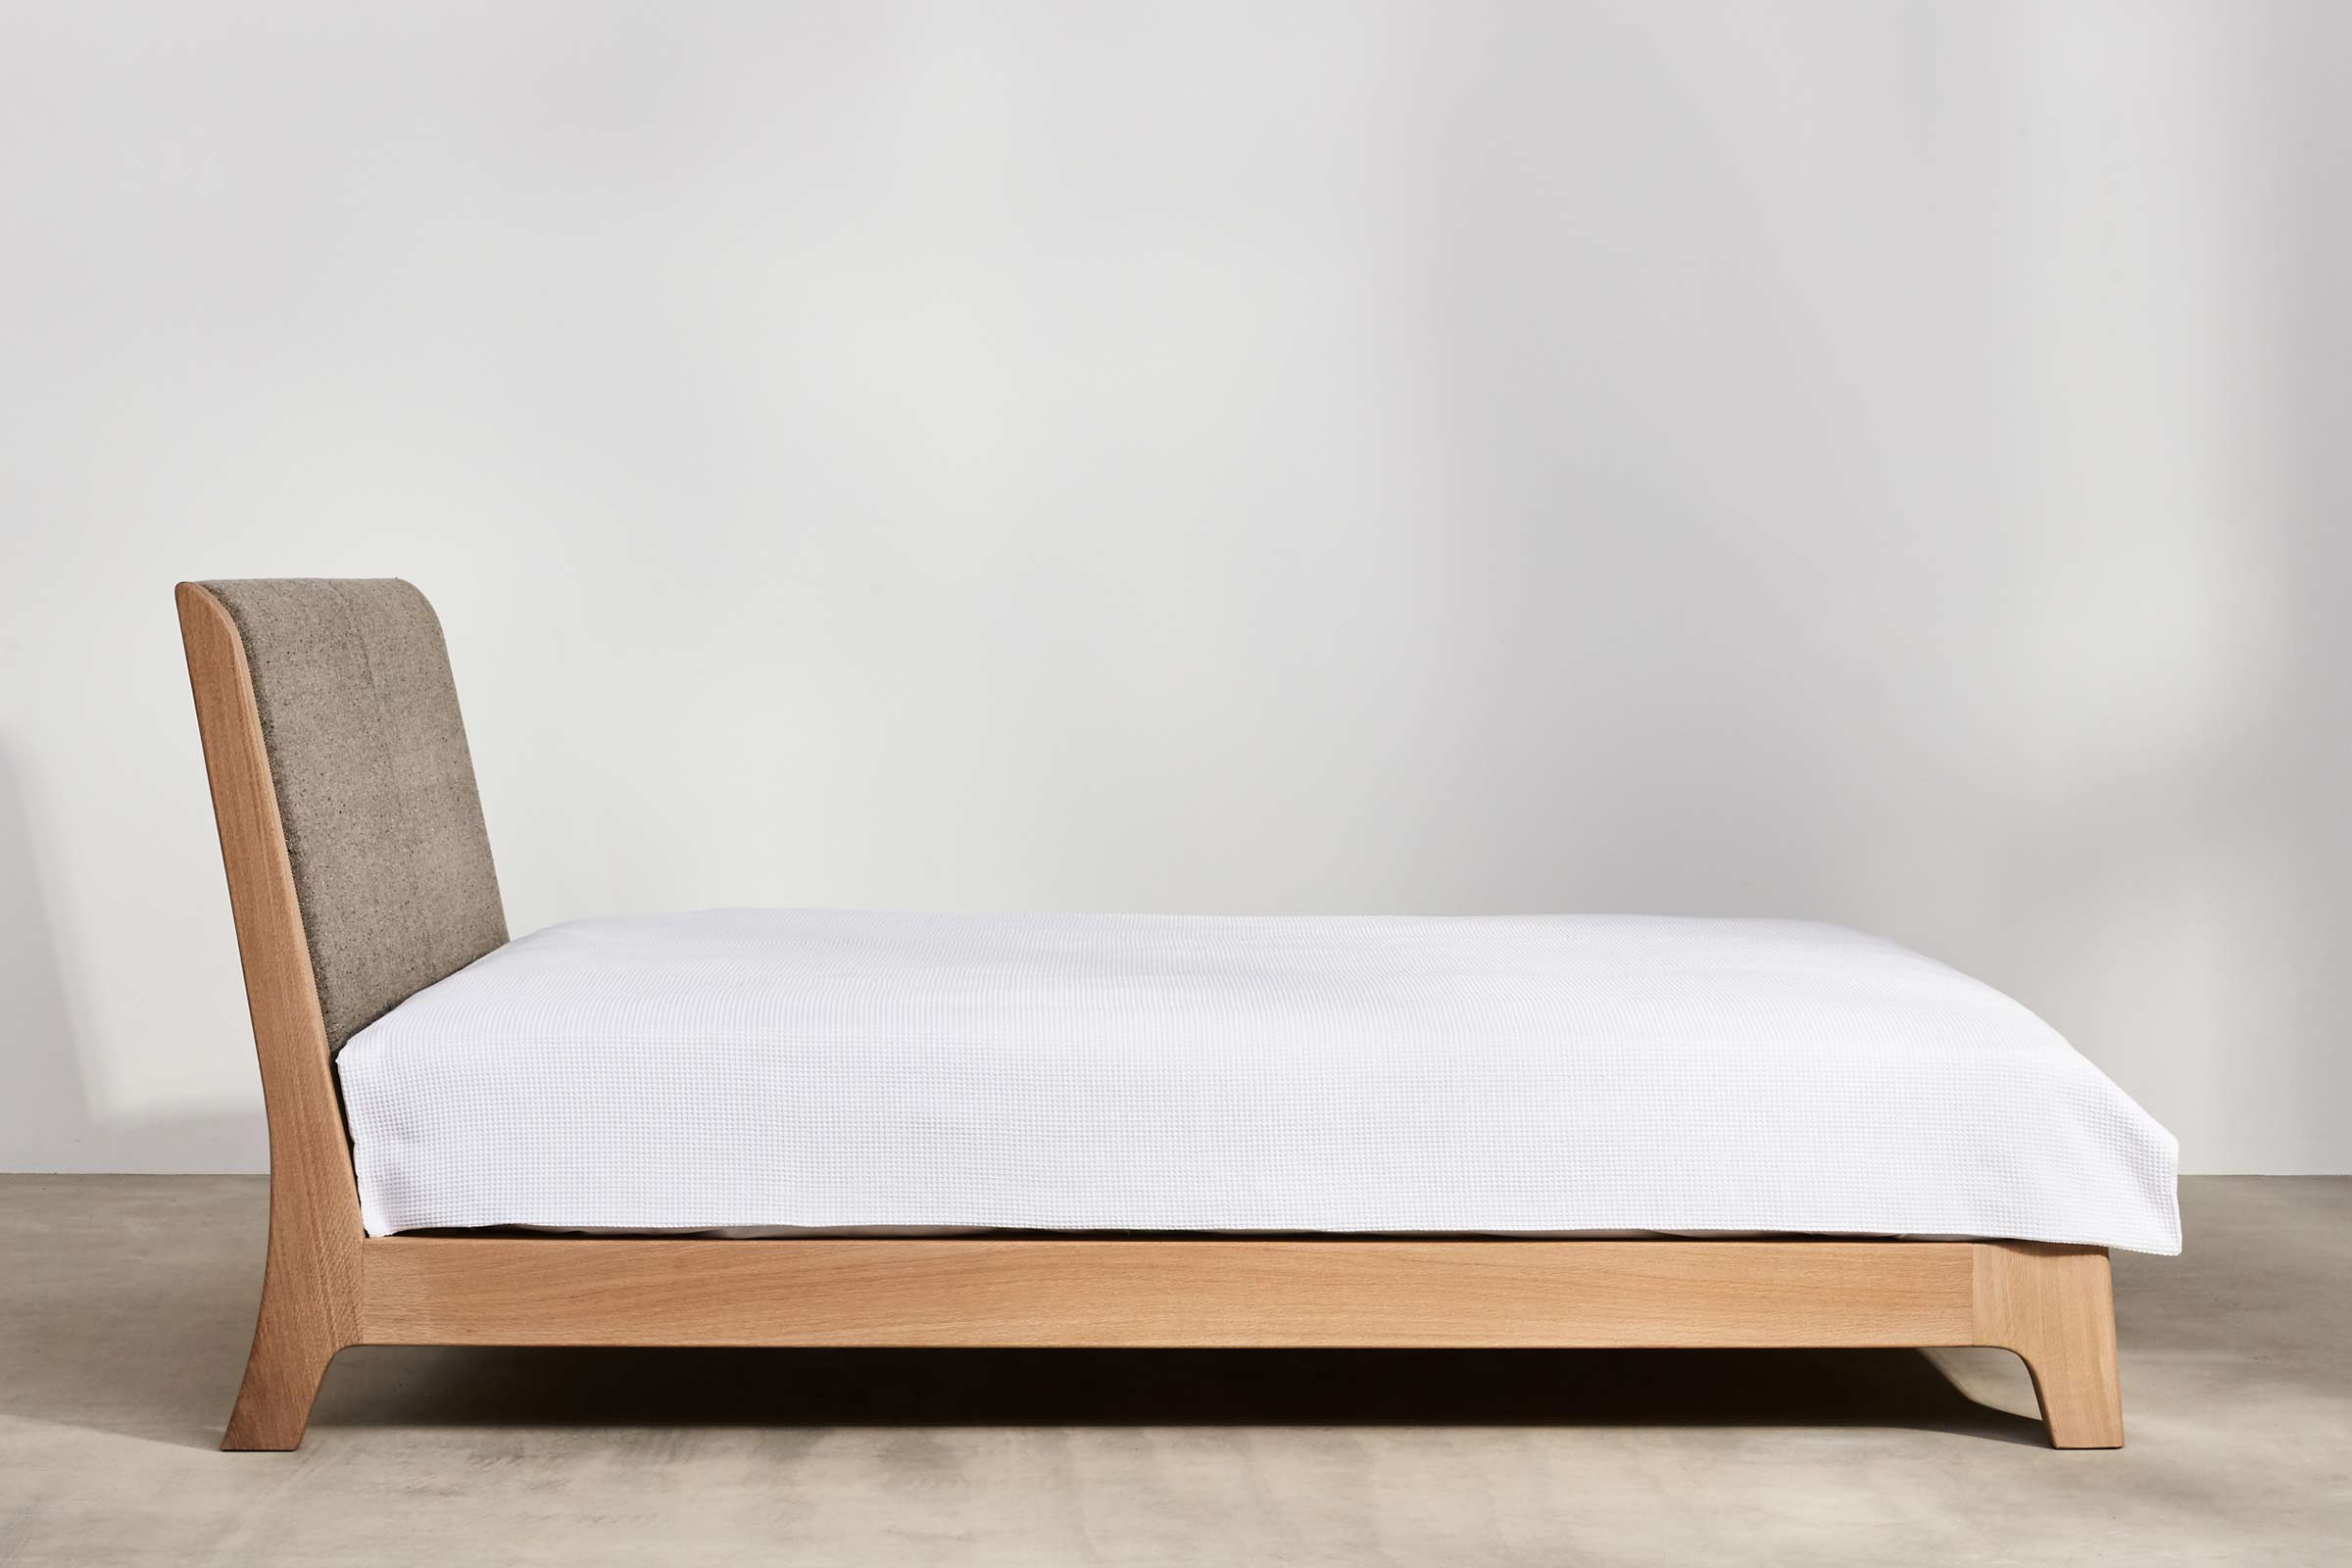 oak bed with upholstered headboard